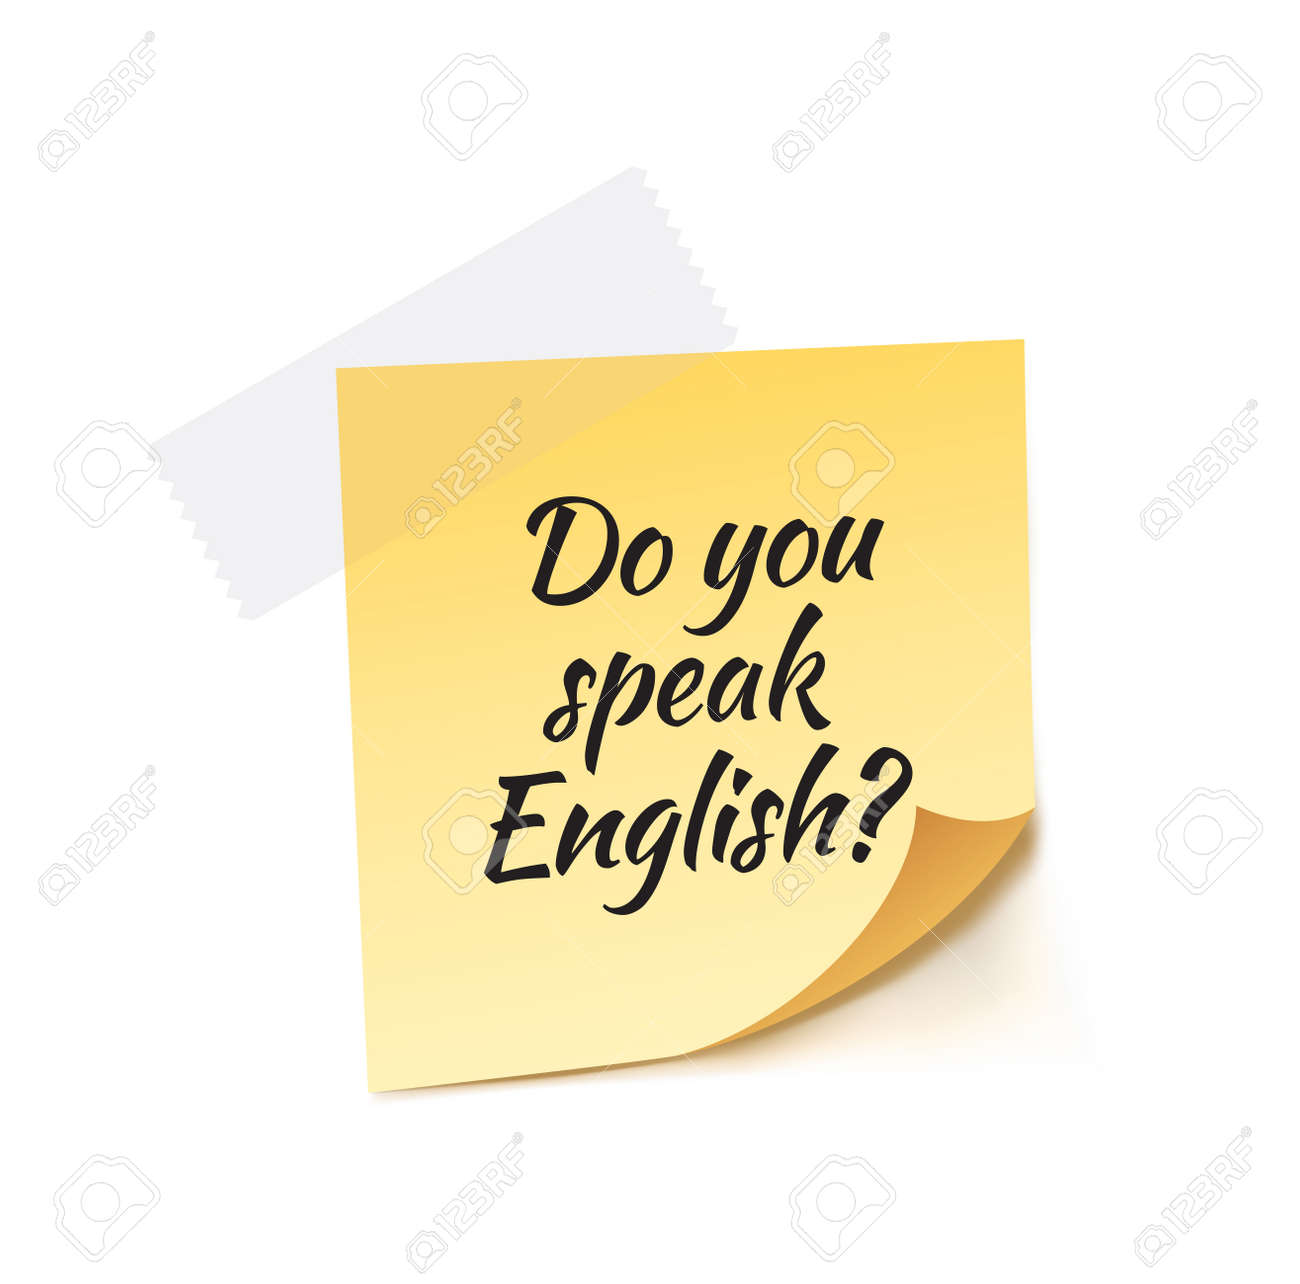 Do You Speak English Stick Note Vector Illustration